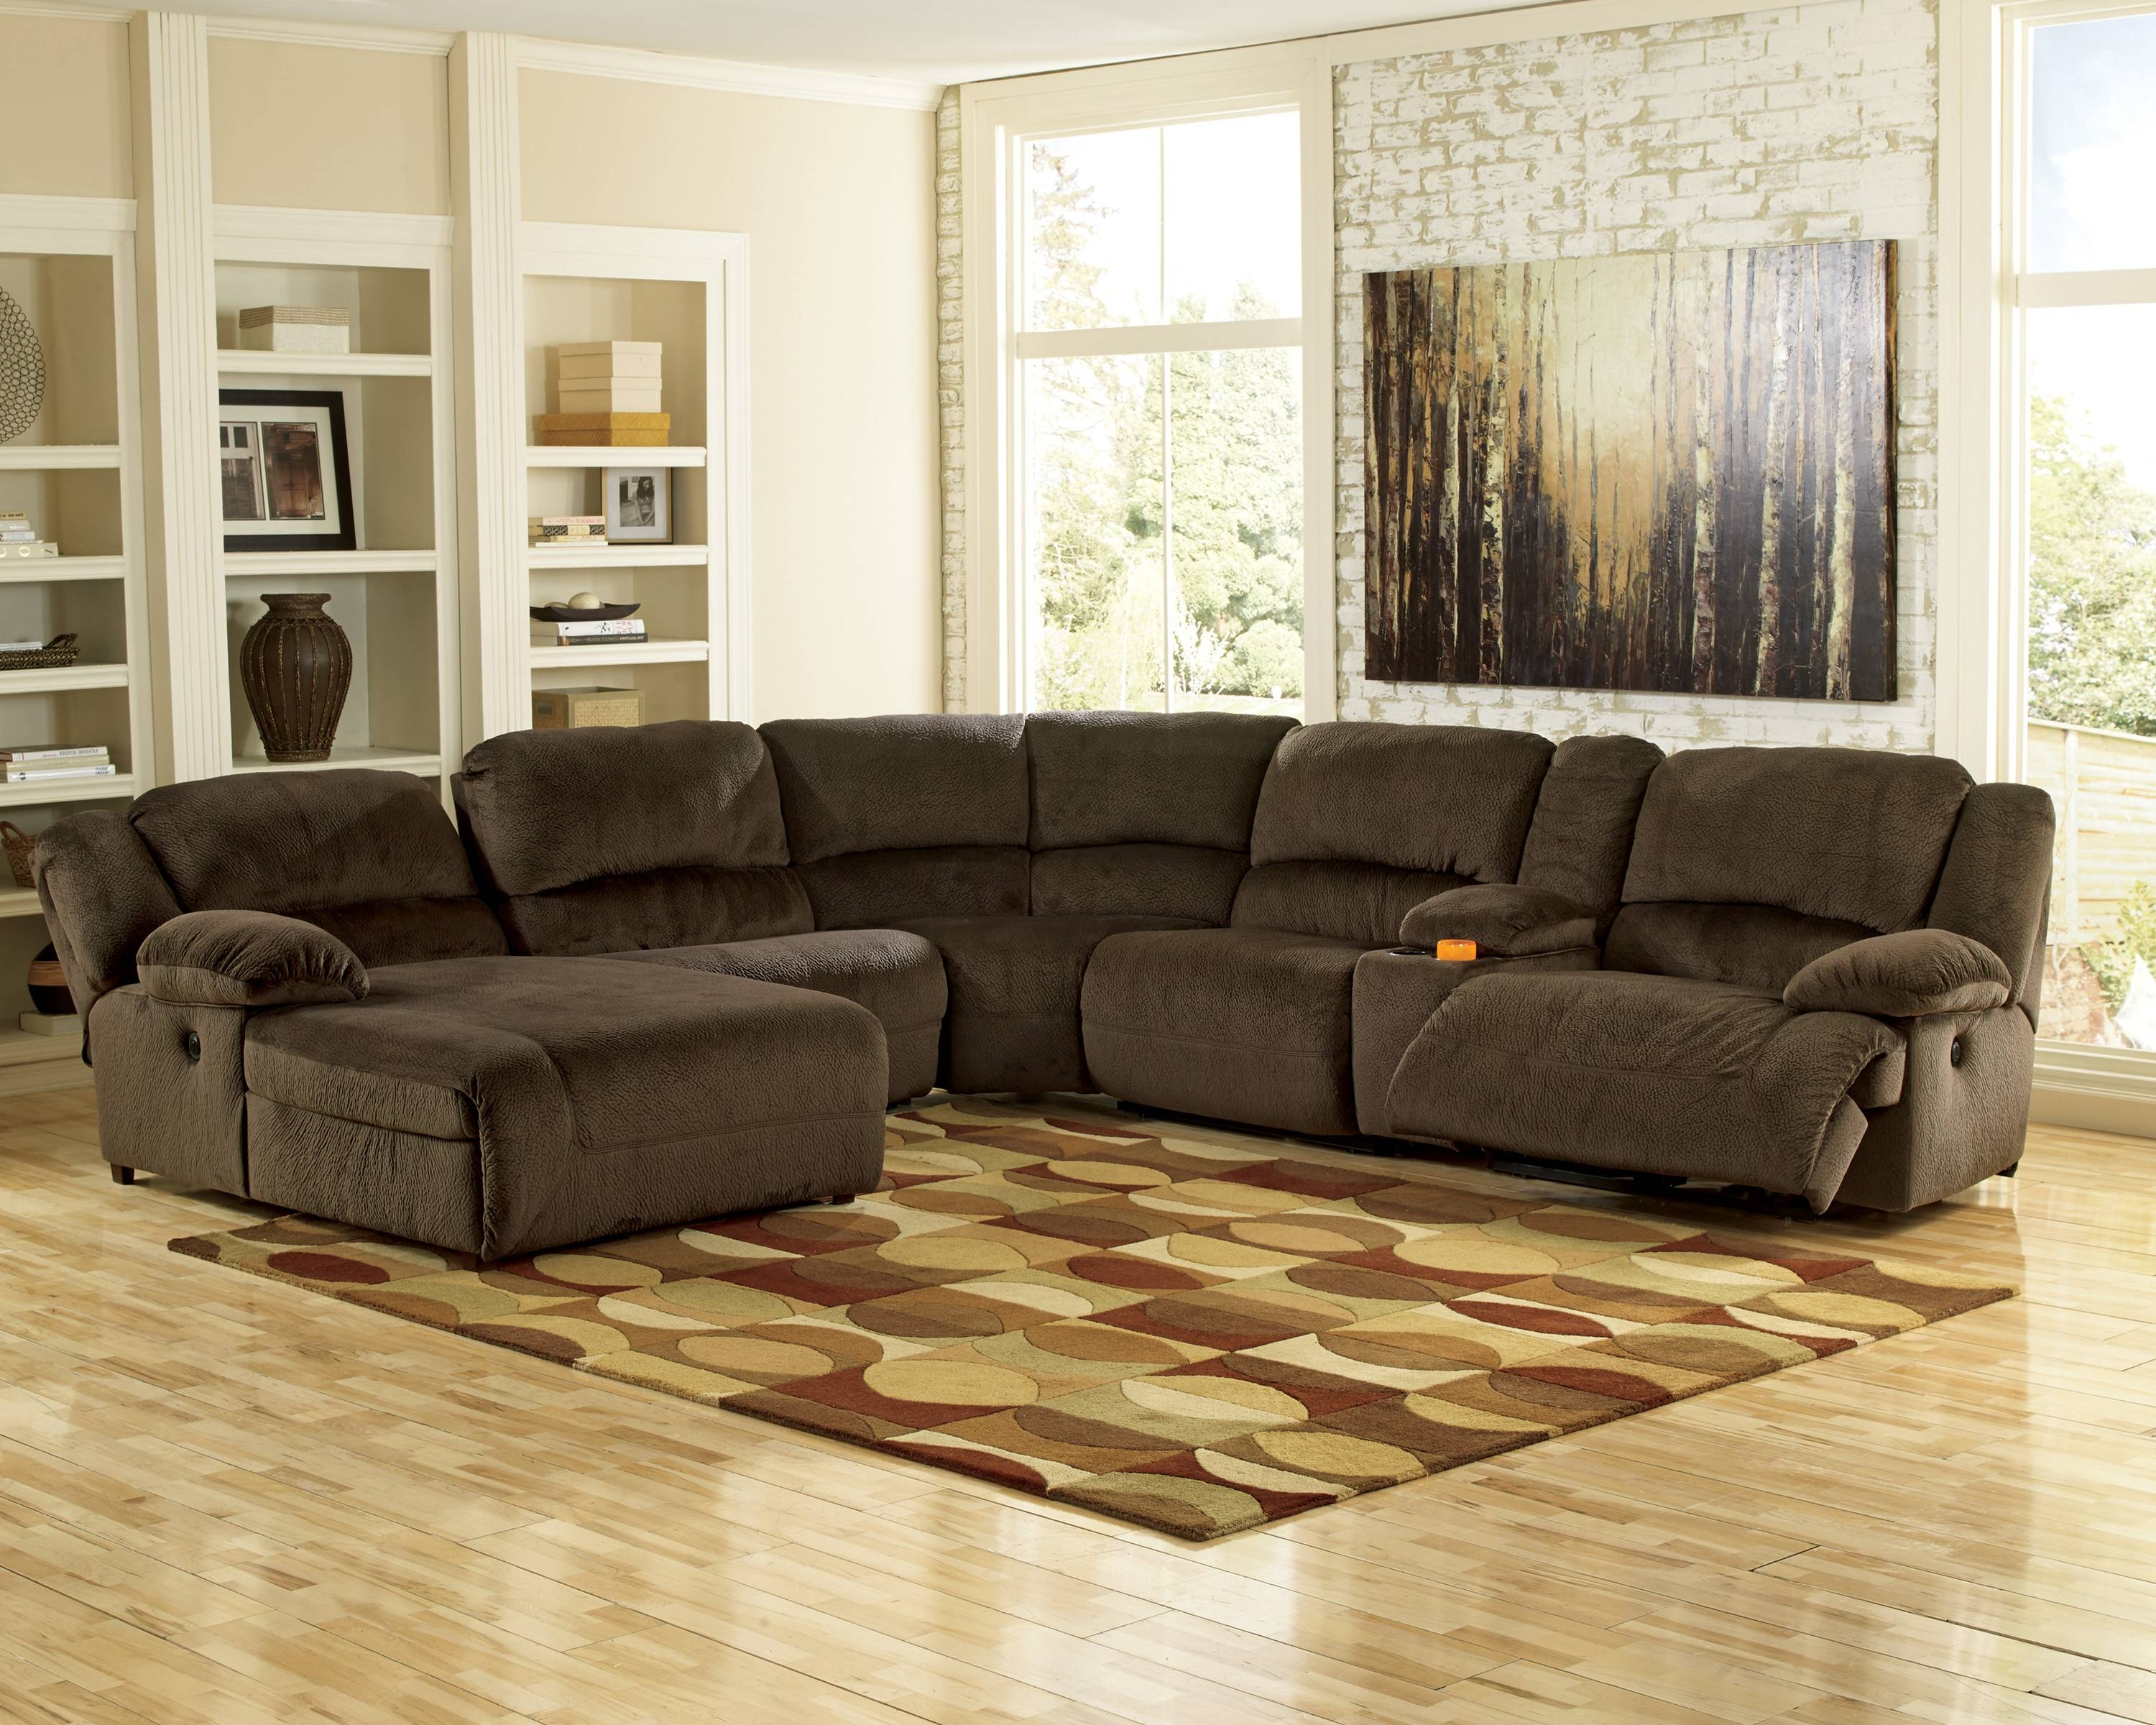 Sofas Center : Ashley Furniture Sectionals Sectional Couch Gray within Ashley Furniture Brown Corduroy Sectional Sofas (Image 14 of 15)